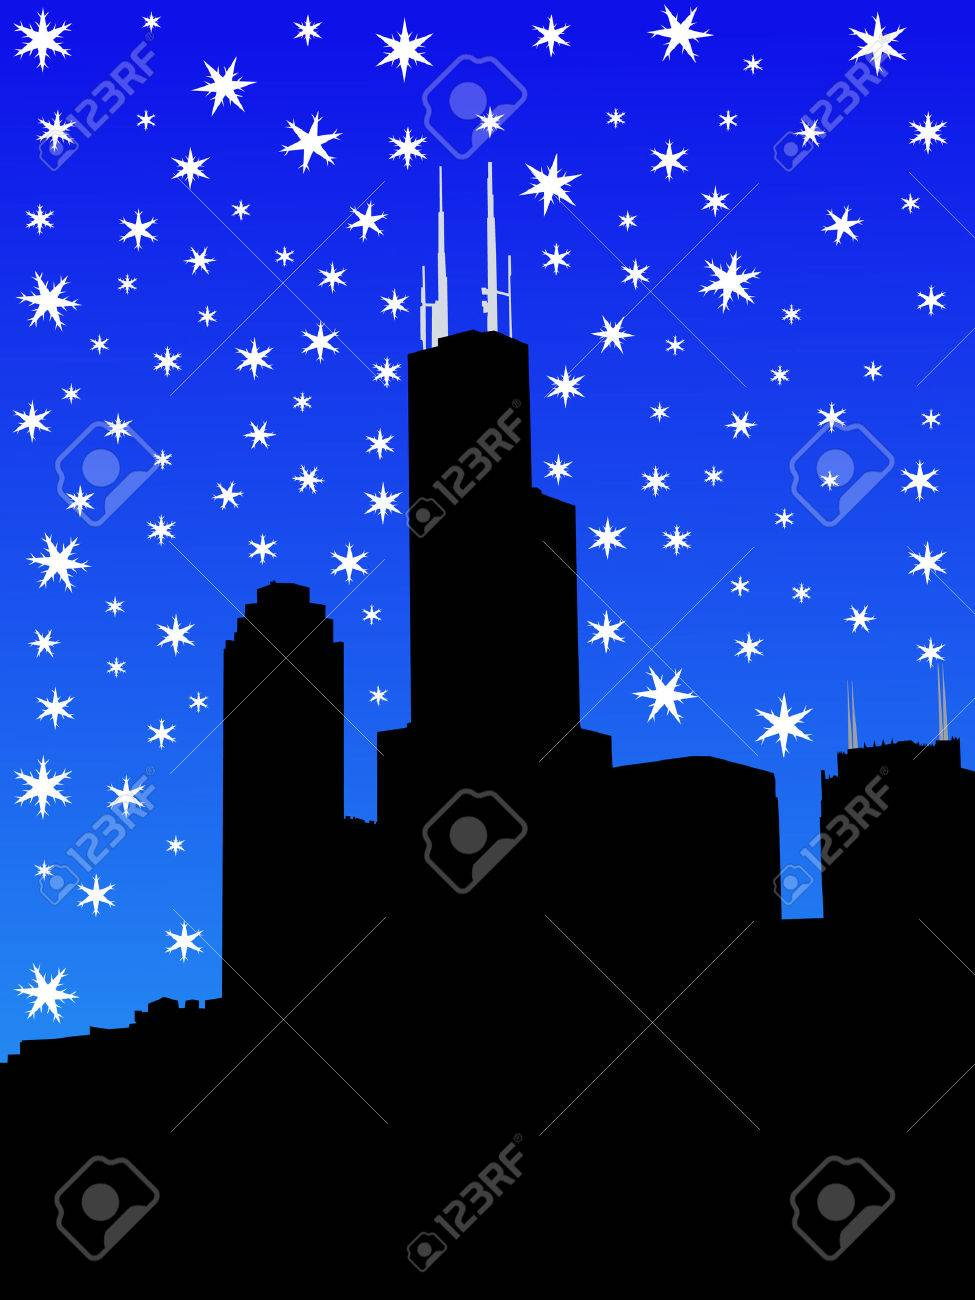 Sears tower Chicago in winter with falling snow Stock Photo - 1674889